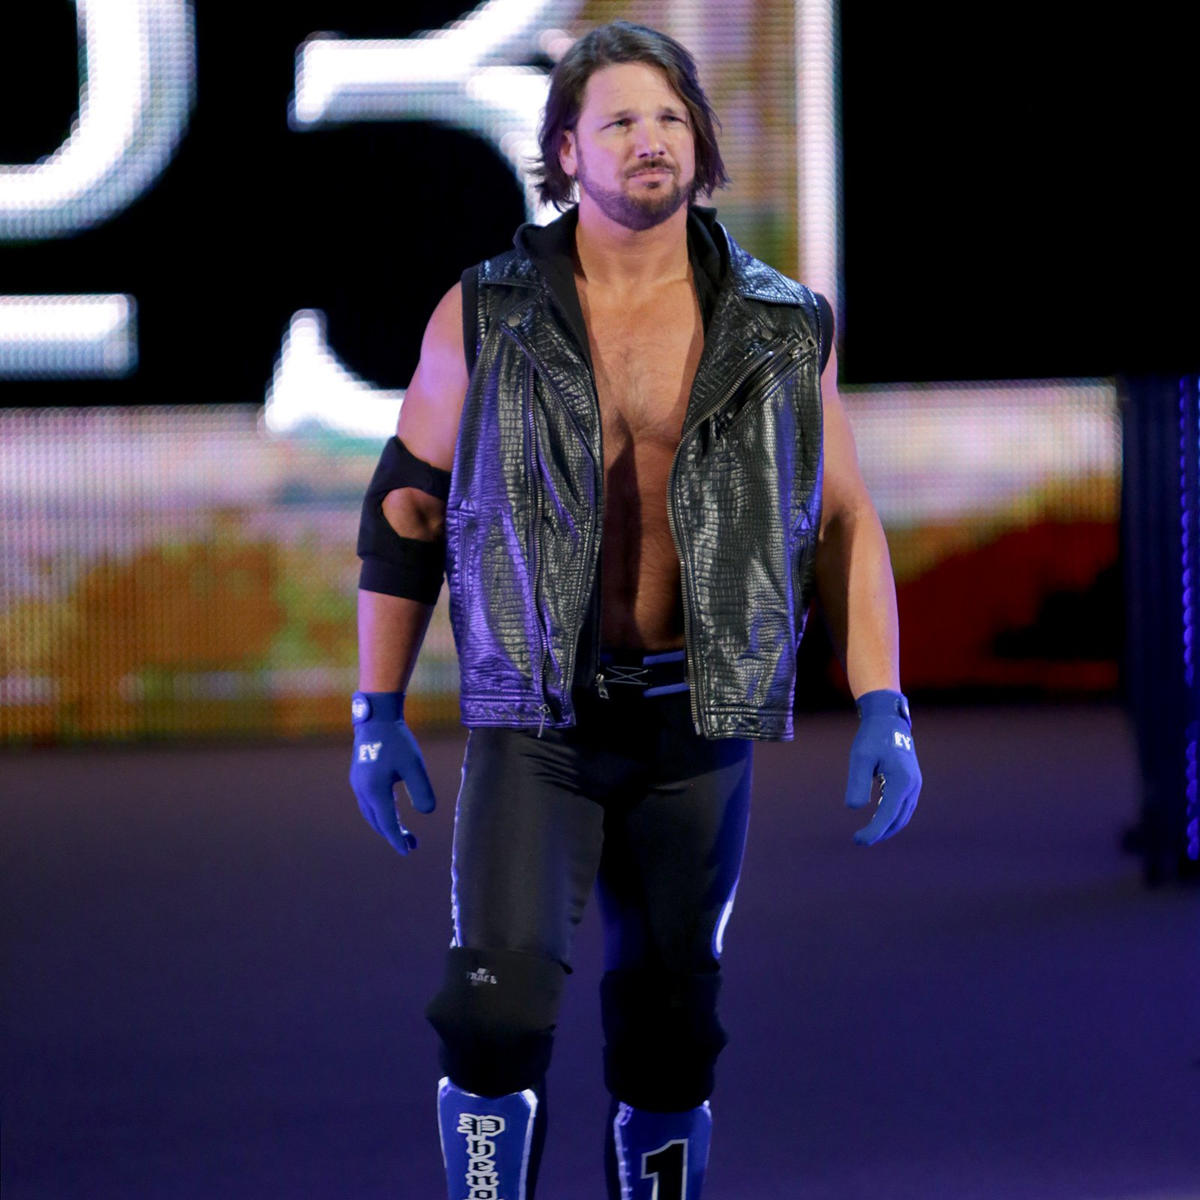 """""""The Phenomenal One"""" AJ Styles makes his highly-anticipated WWE debut as the third entrant in the Royal Rumble Match."""